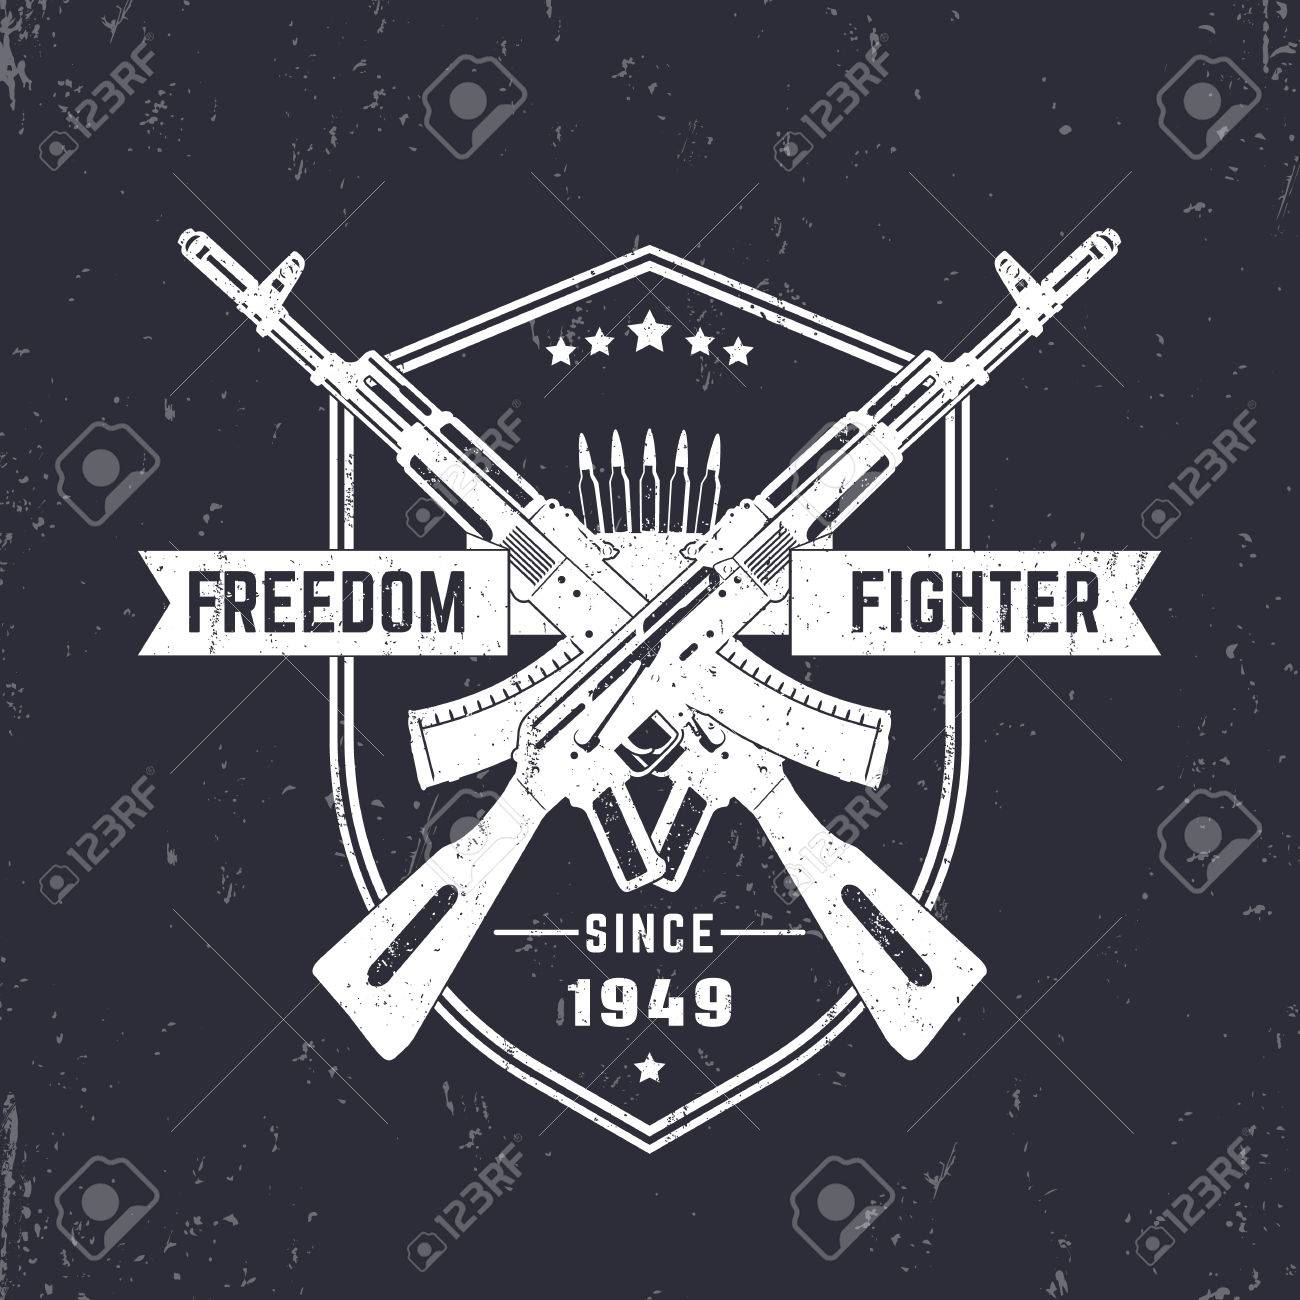 Gun T Shirt Designs | Freedom Fighter Vintage T Shirt Design Print With Crossed